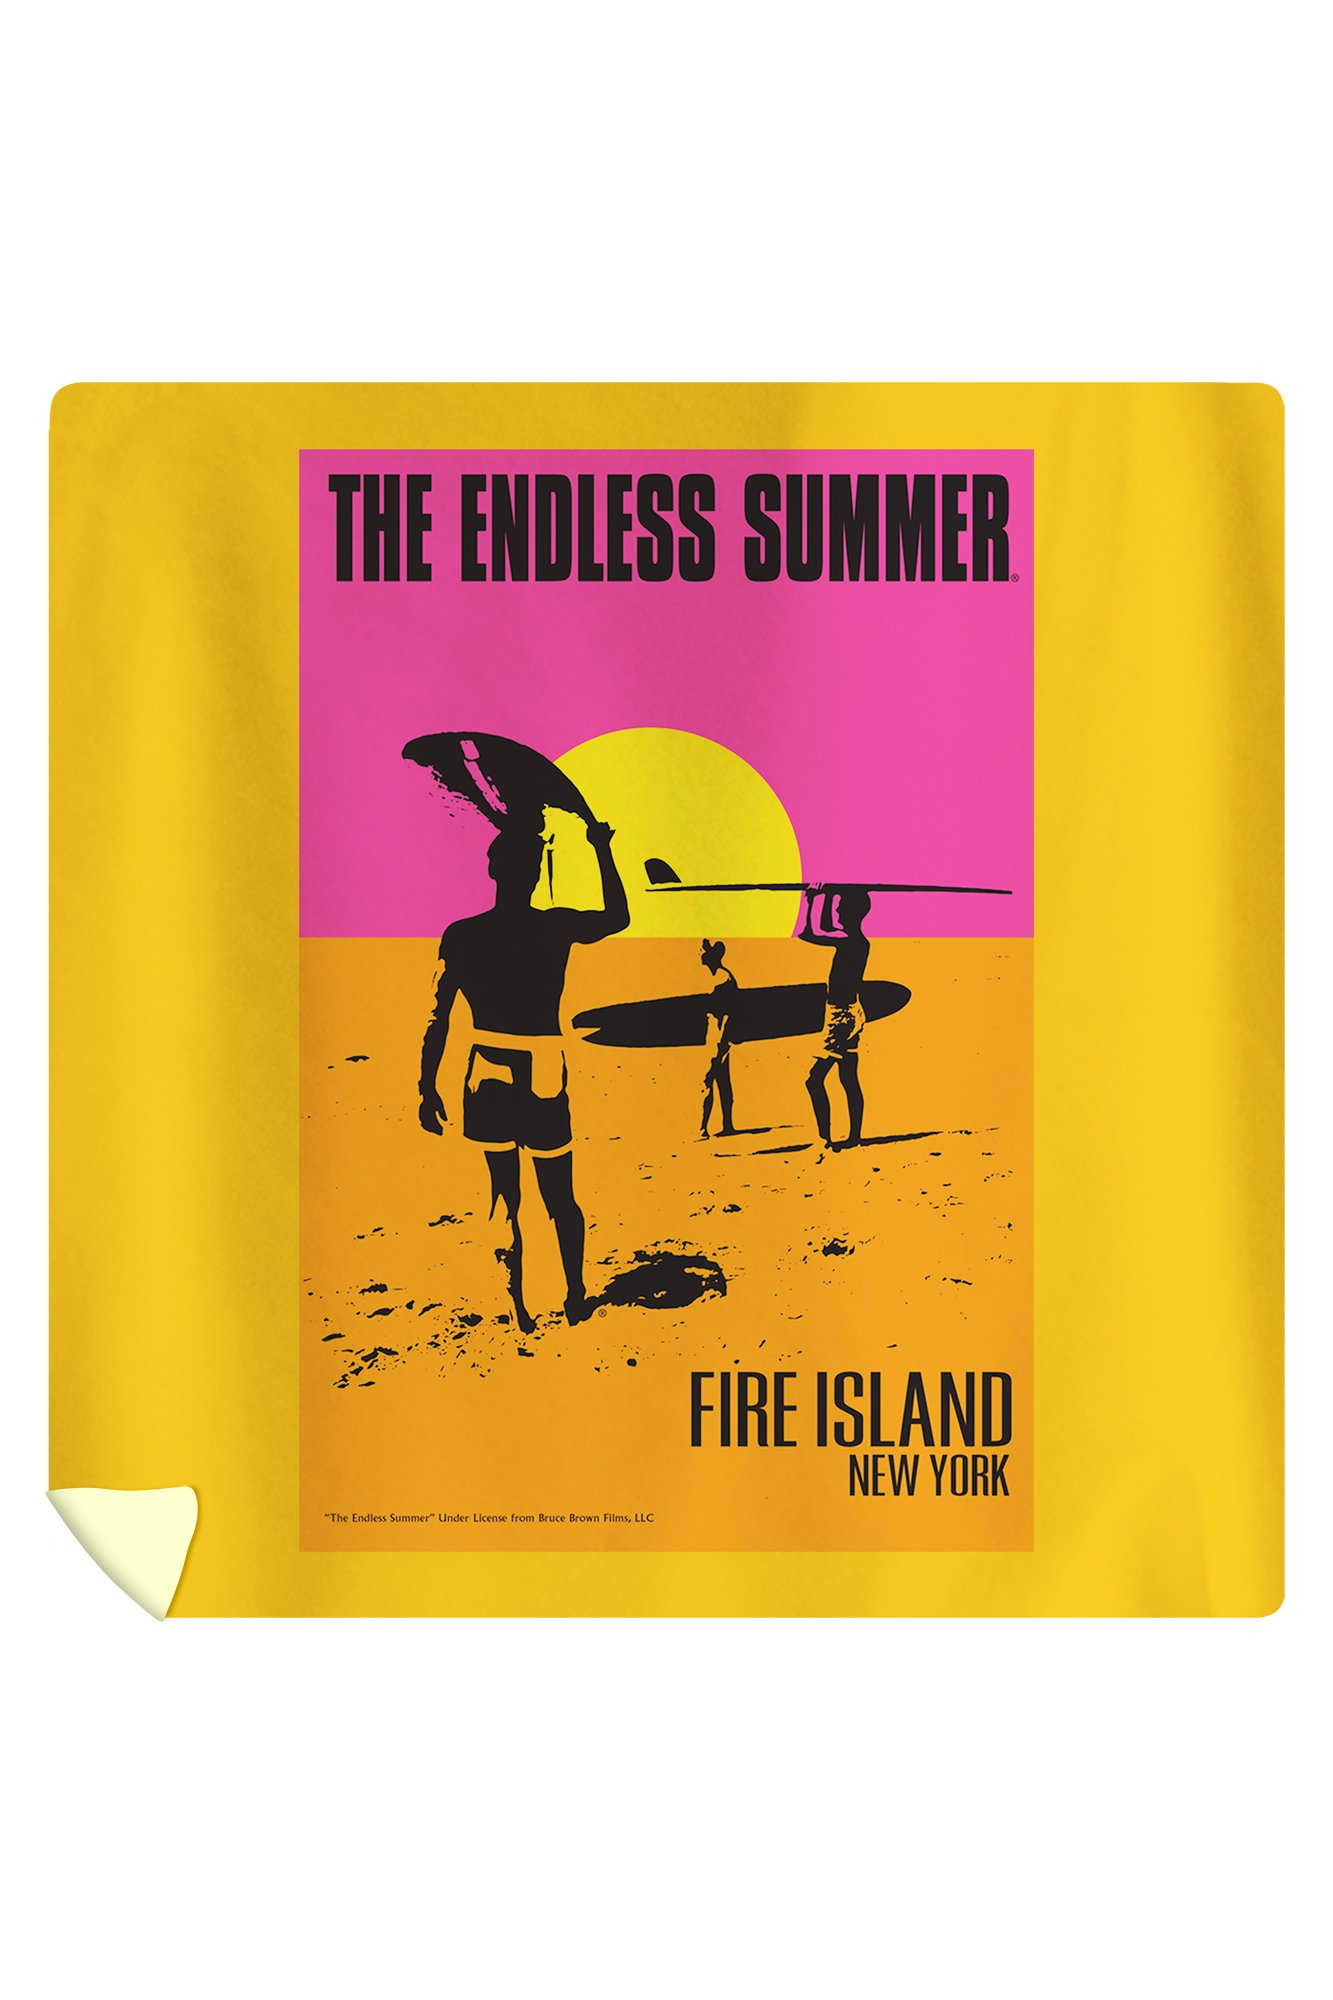 Fire Island, New York - The Endless Summer - Original Movie Poster (88x88 Queen Microfiber Duvet Cover)